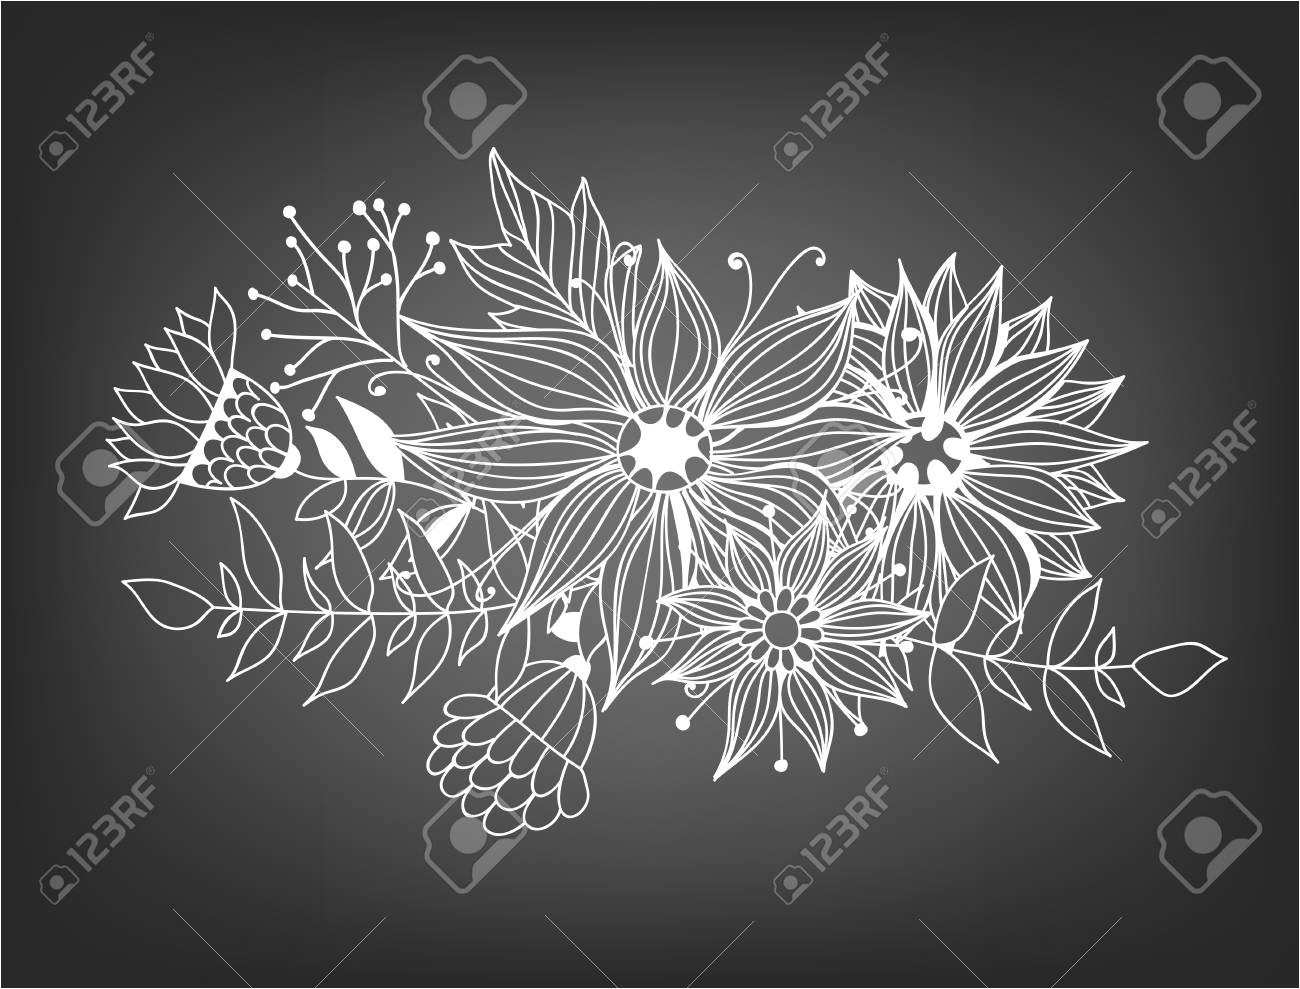 77399765 doodle bouquet od flowers and leaves on chalkboard background template design for invitations cards jpg